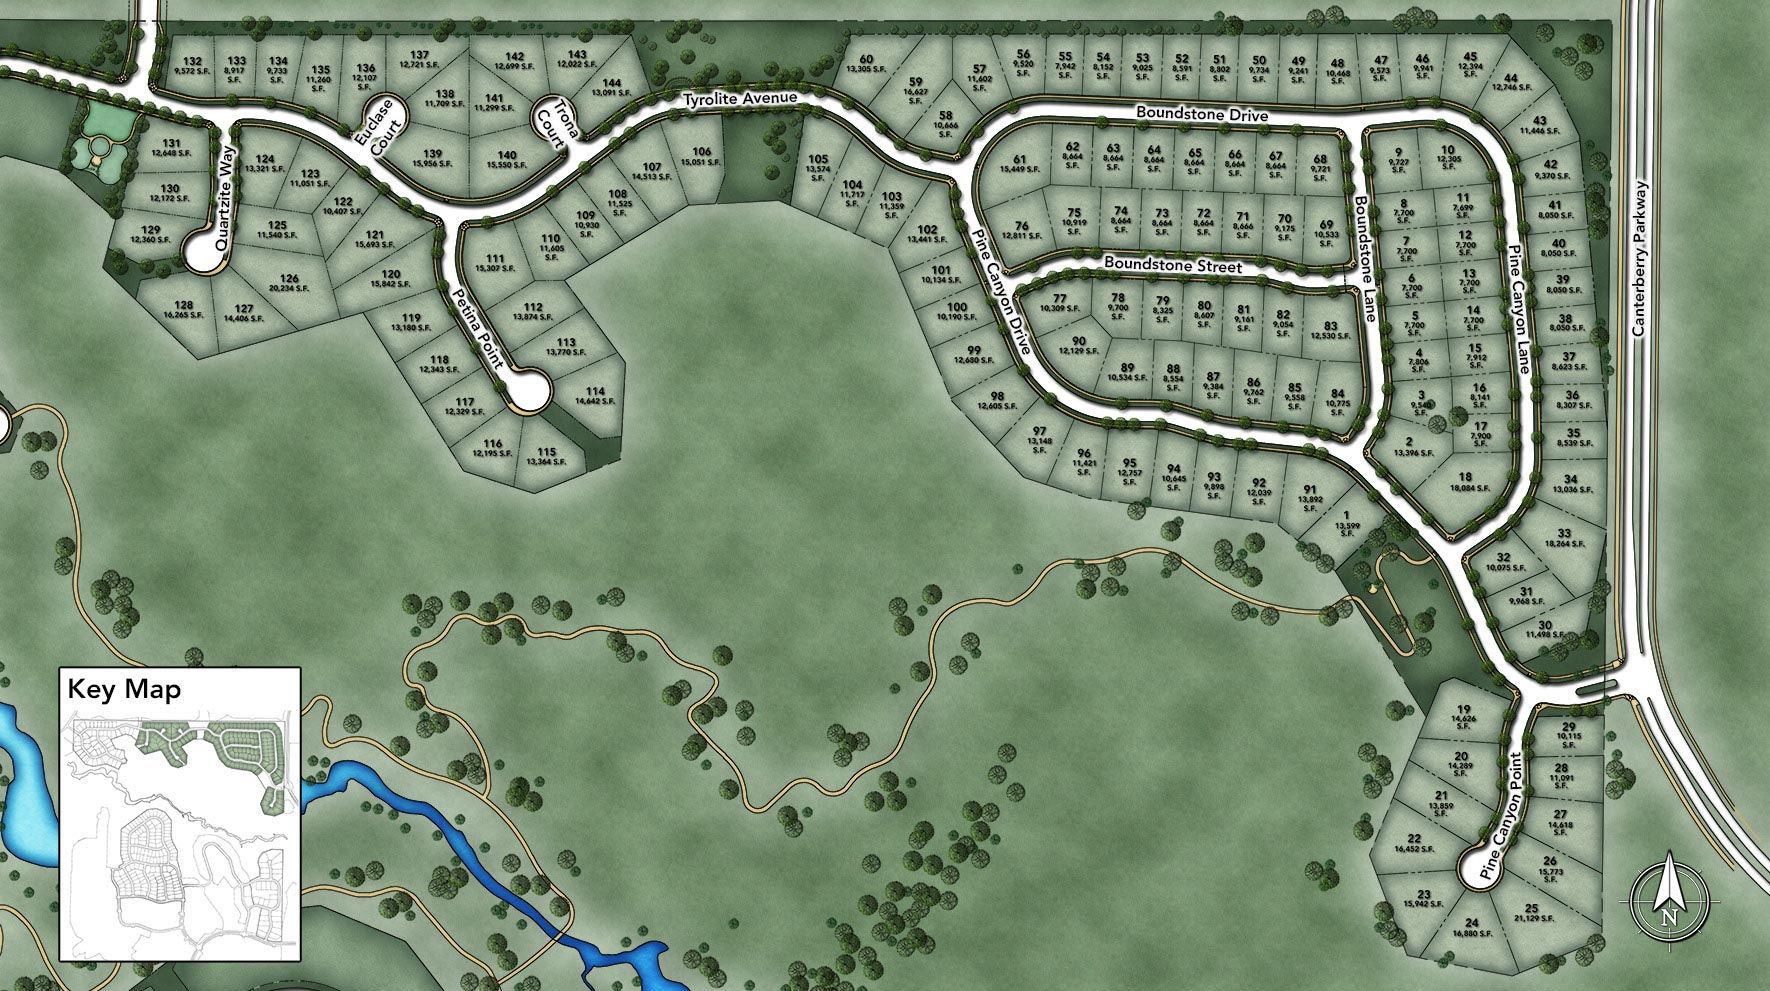 The Highlands at Parker Site Plan